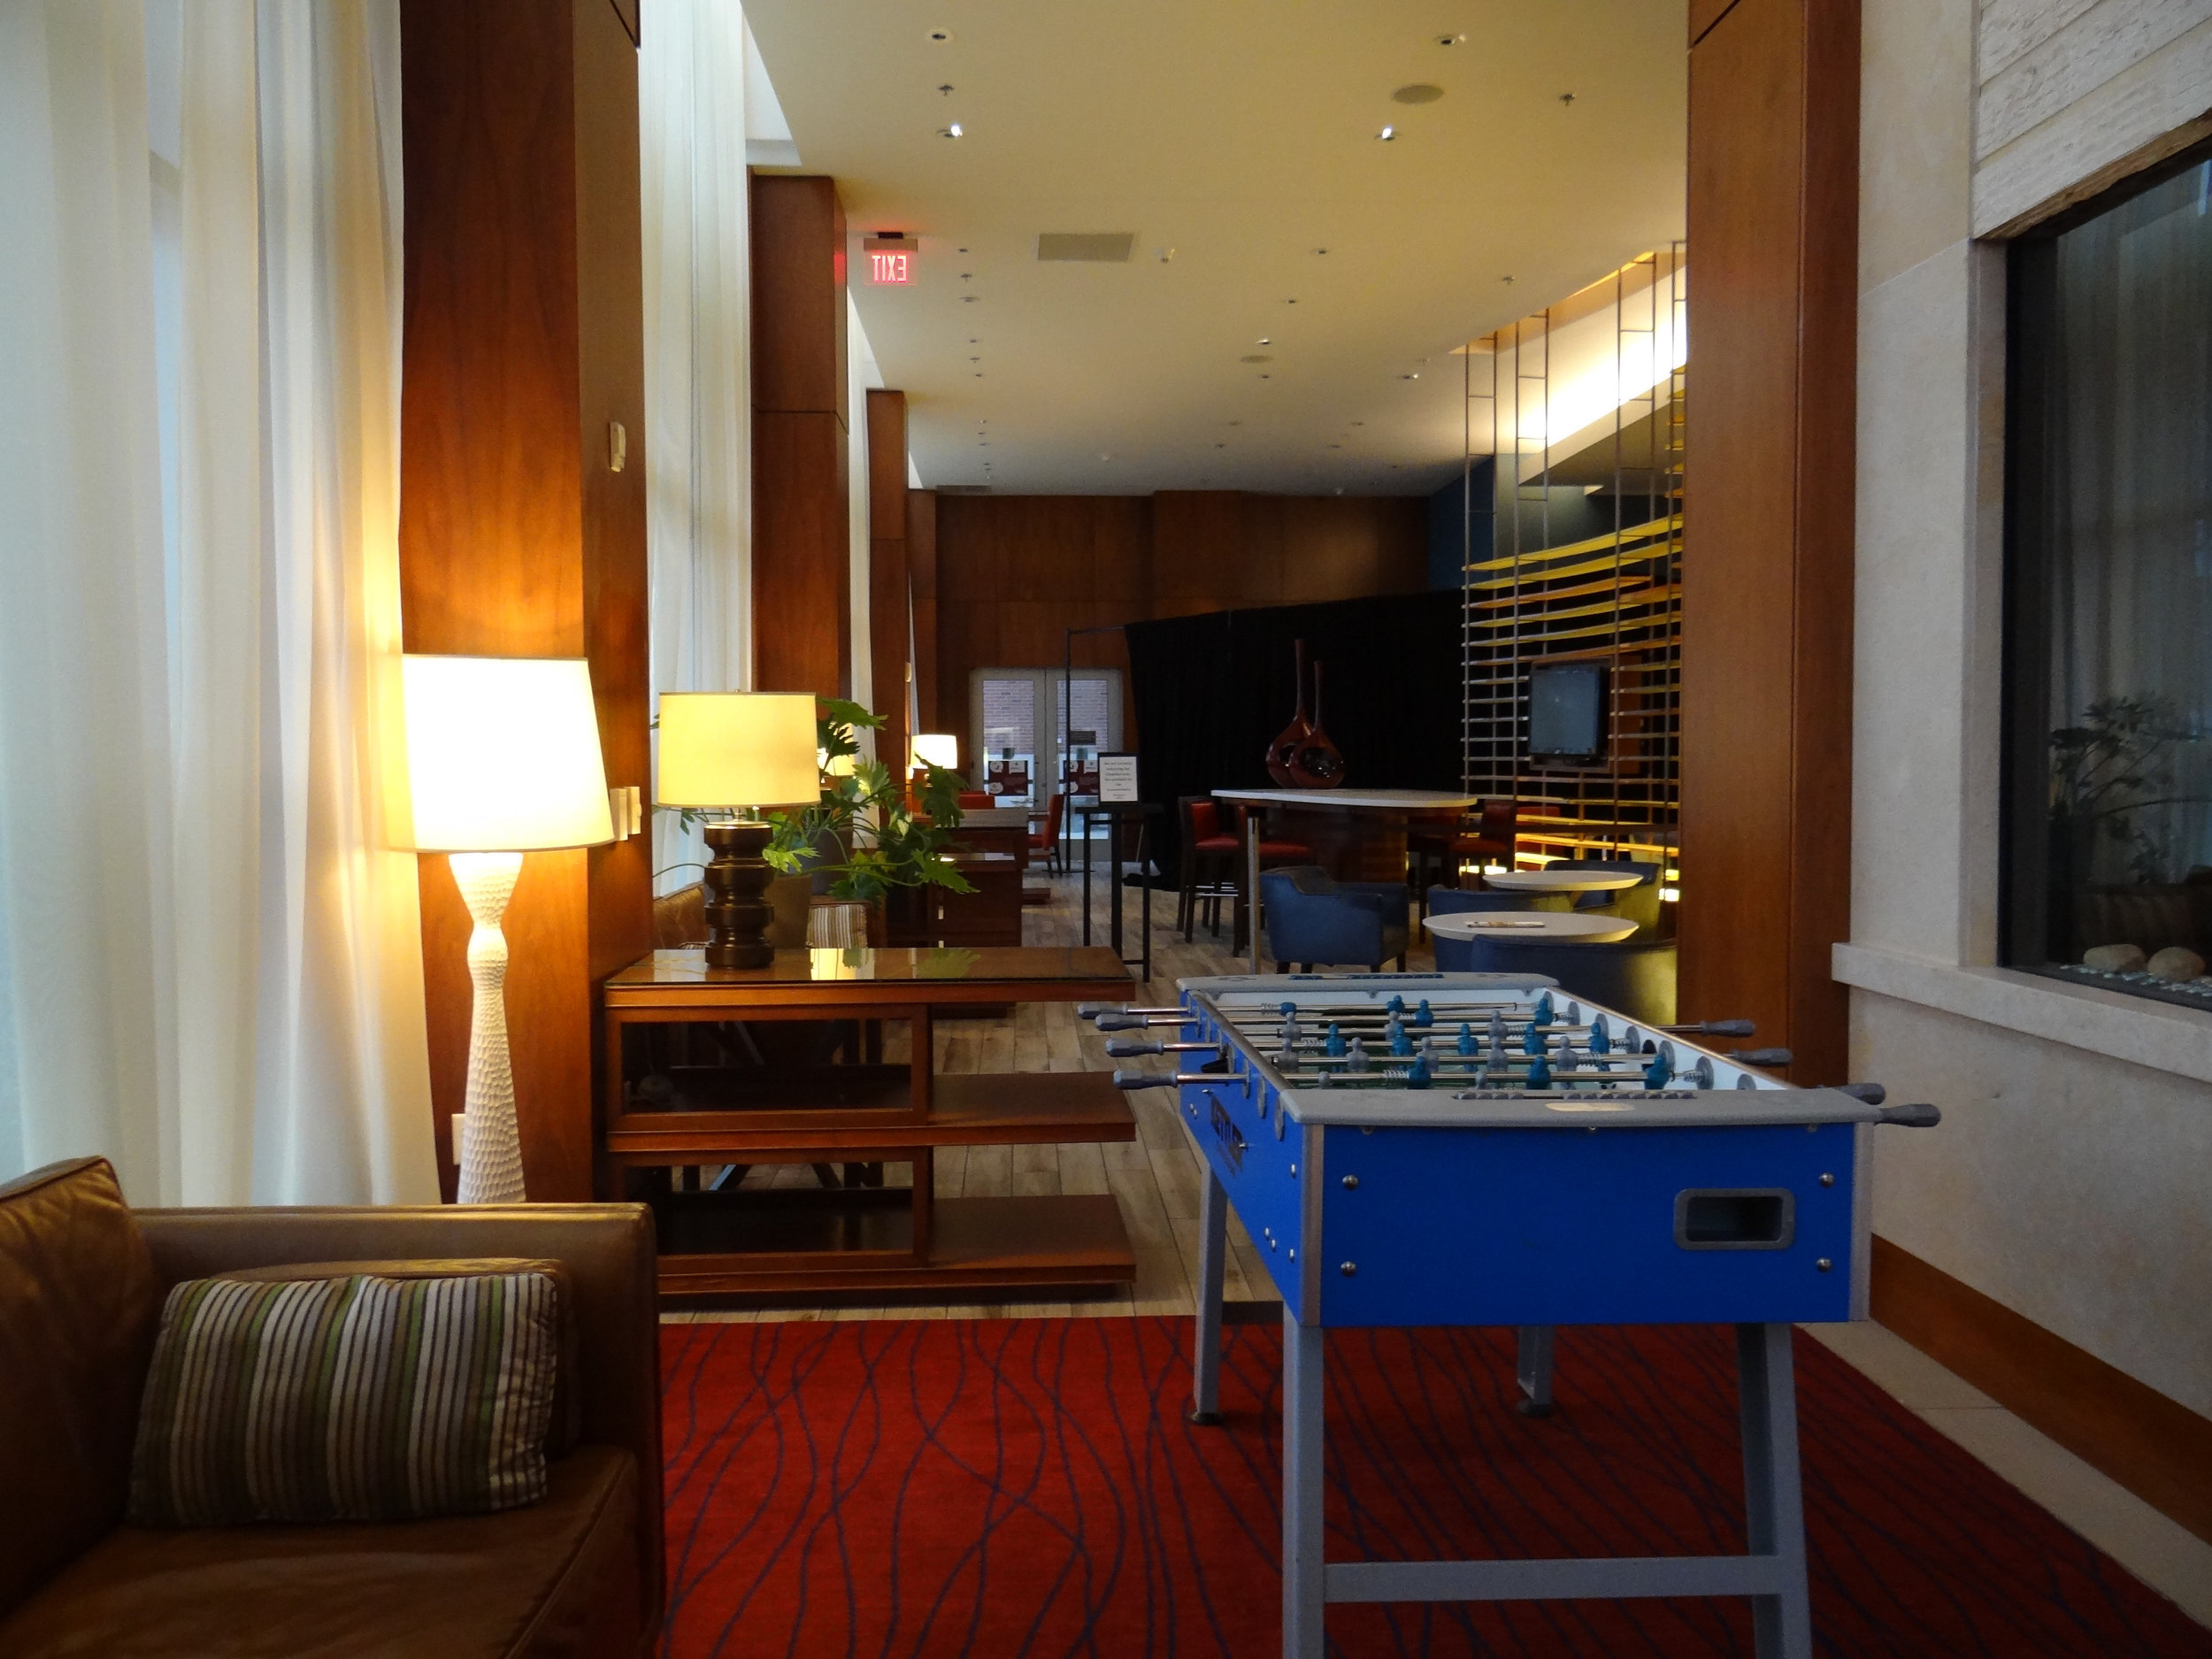 marriott-dc-18.jpg